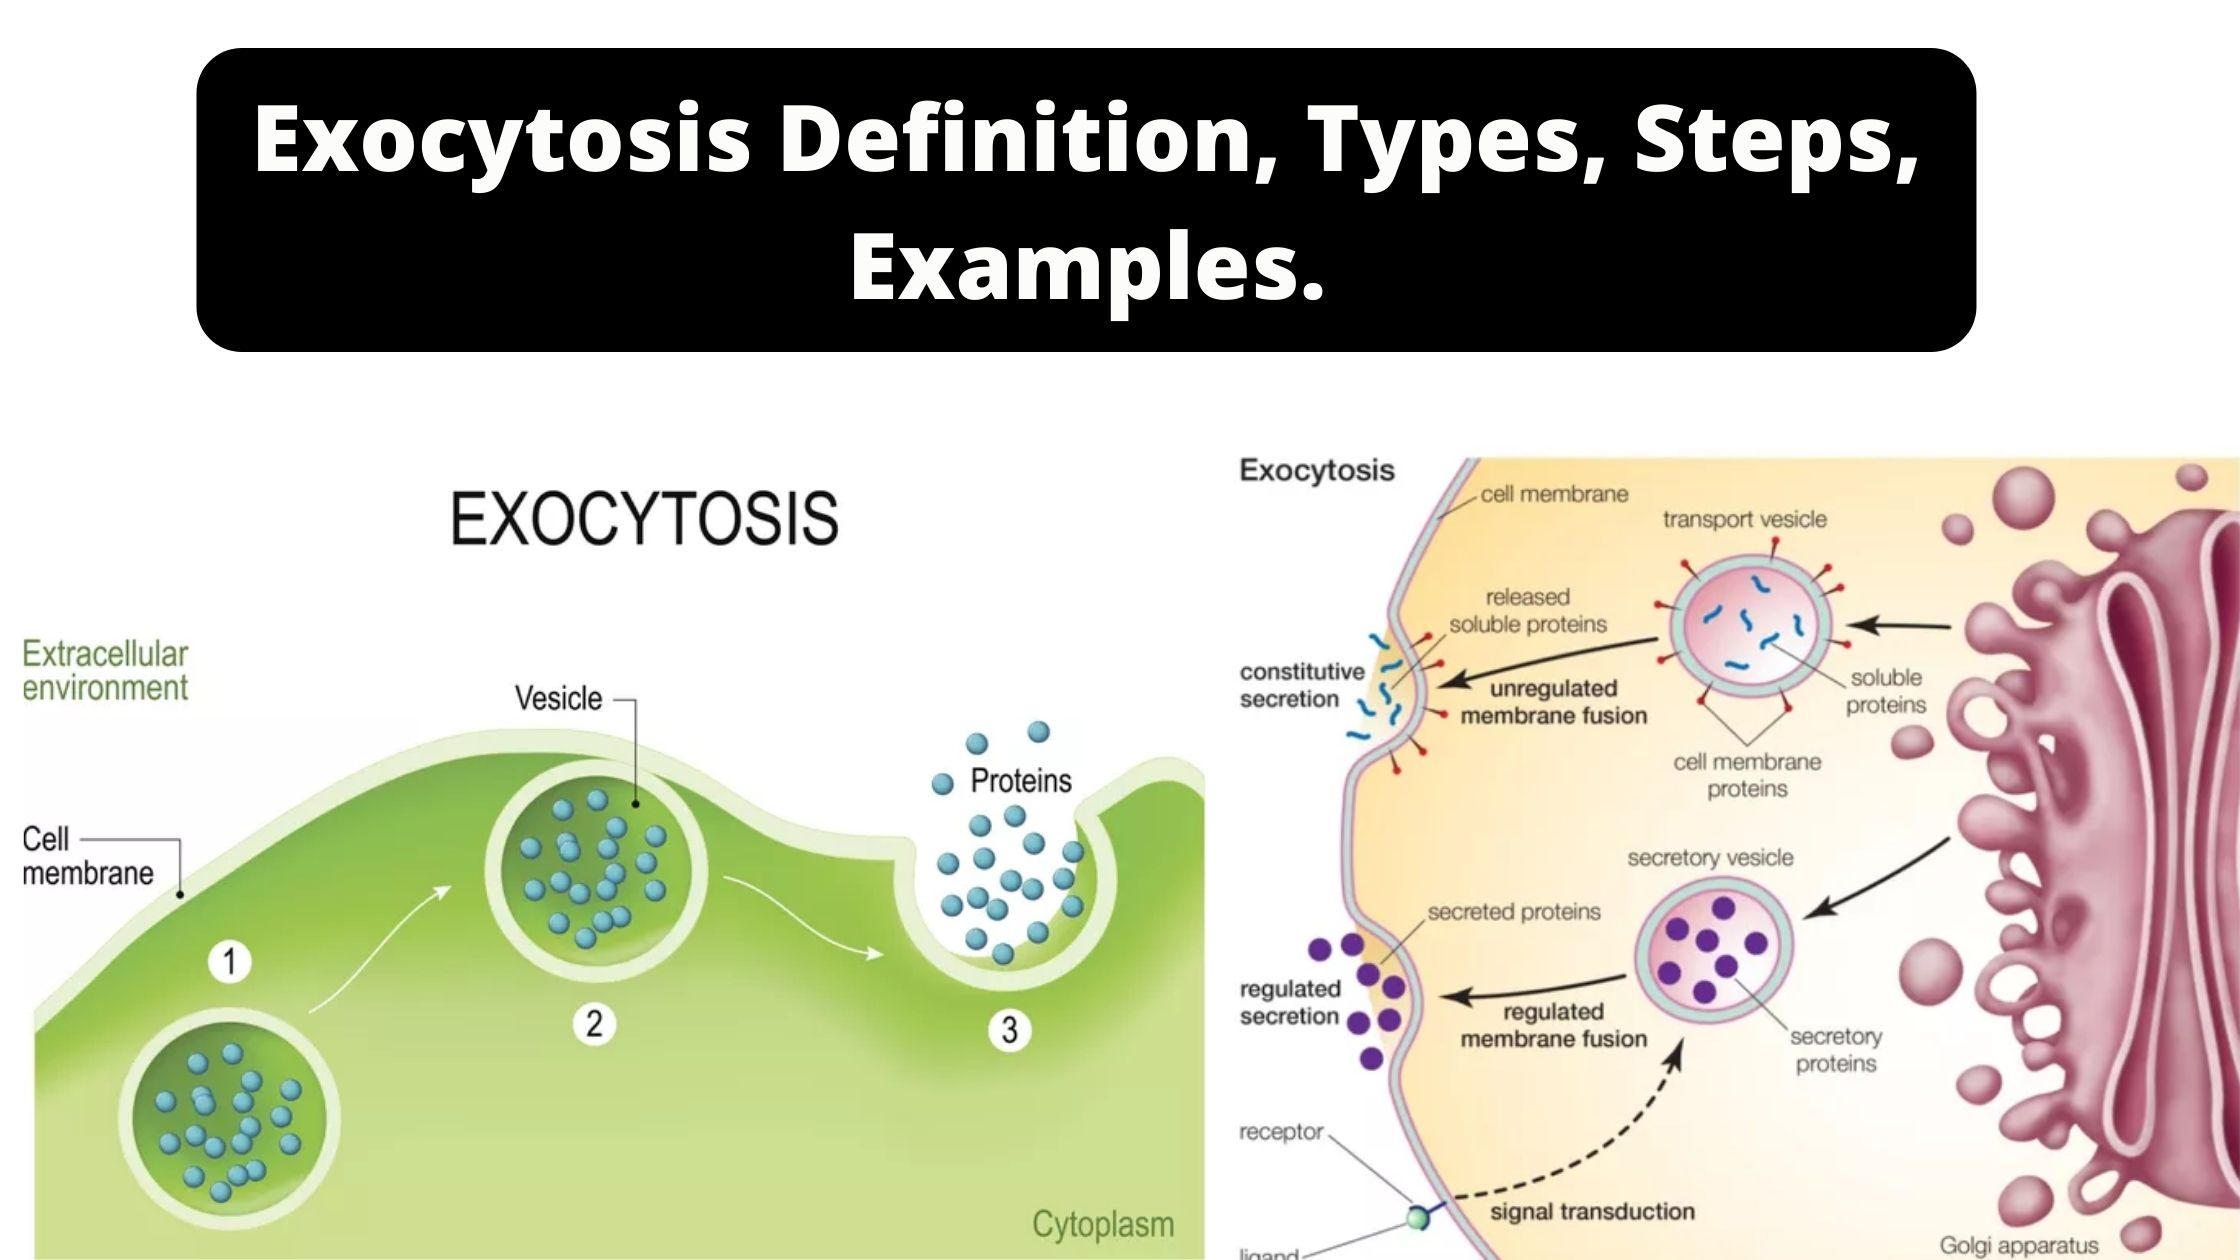 Exocytosis Definition, Types, Steps, Examples.